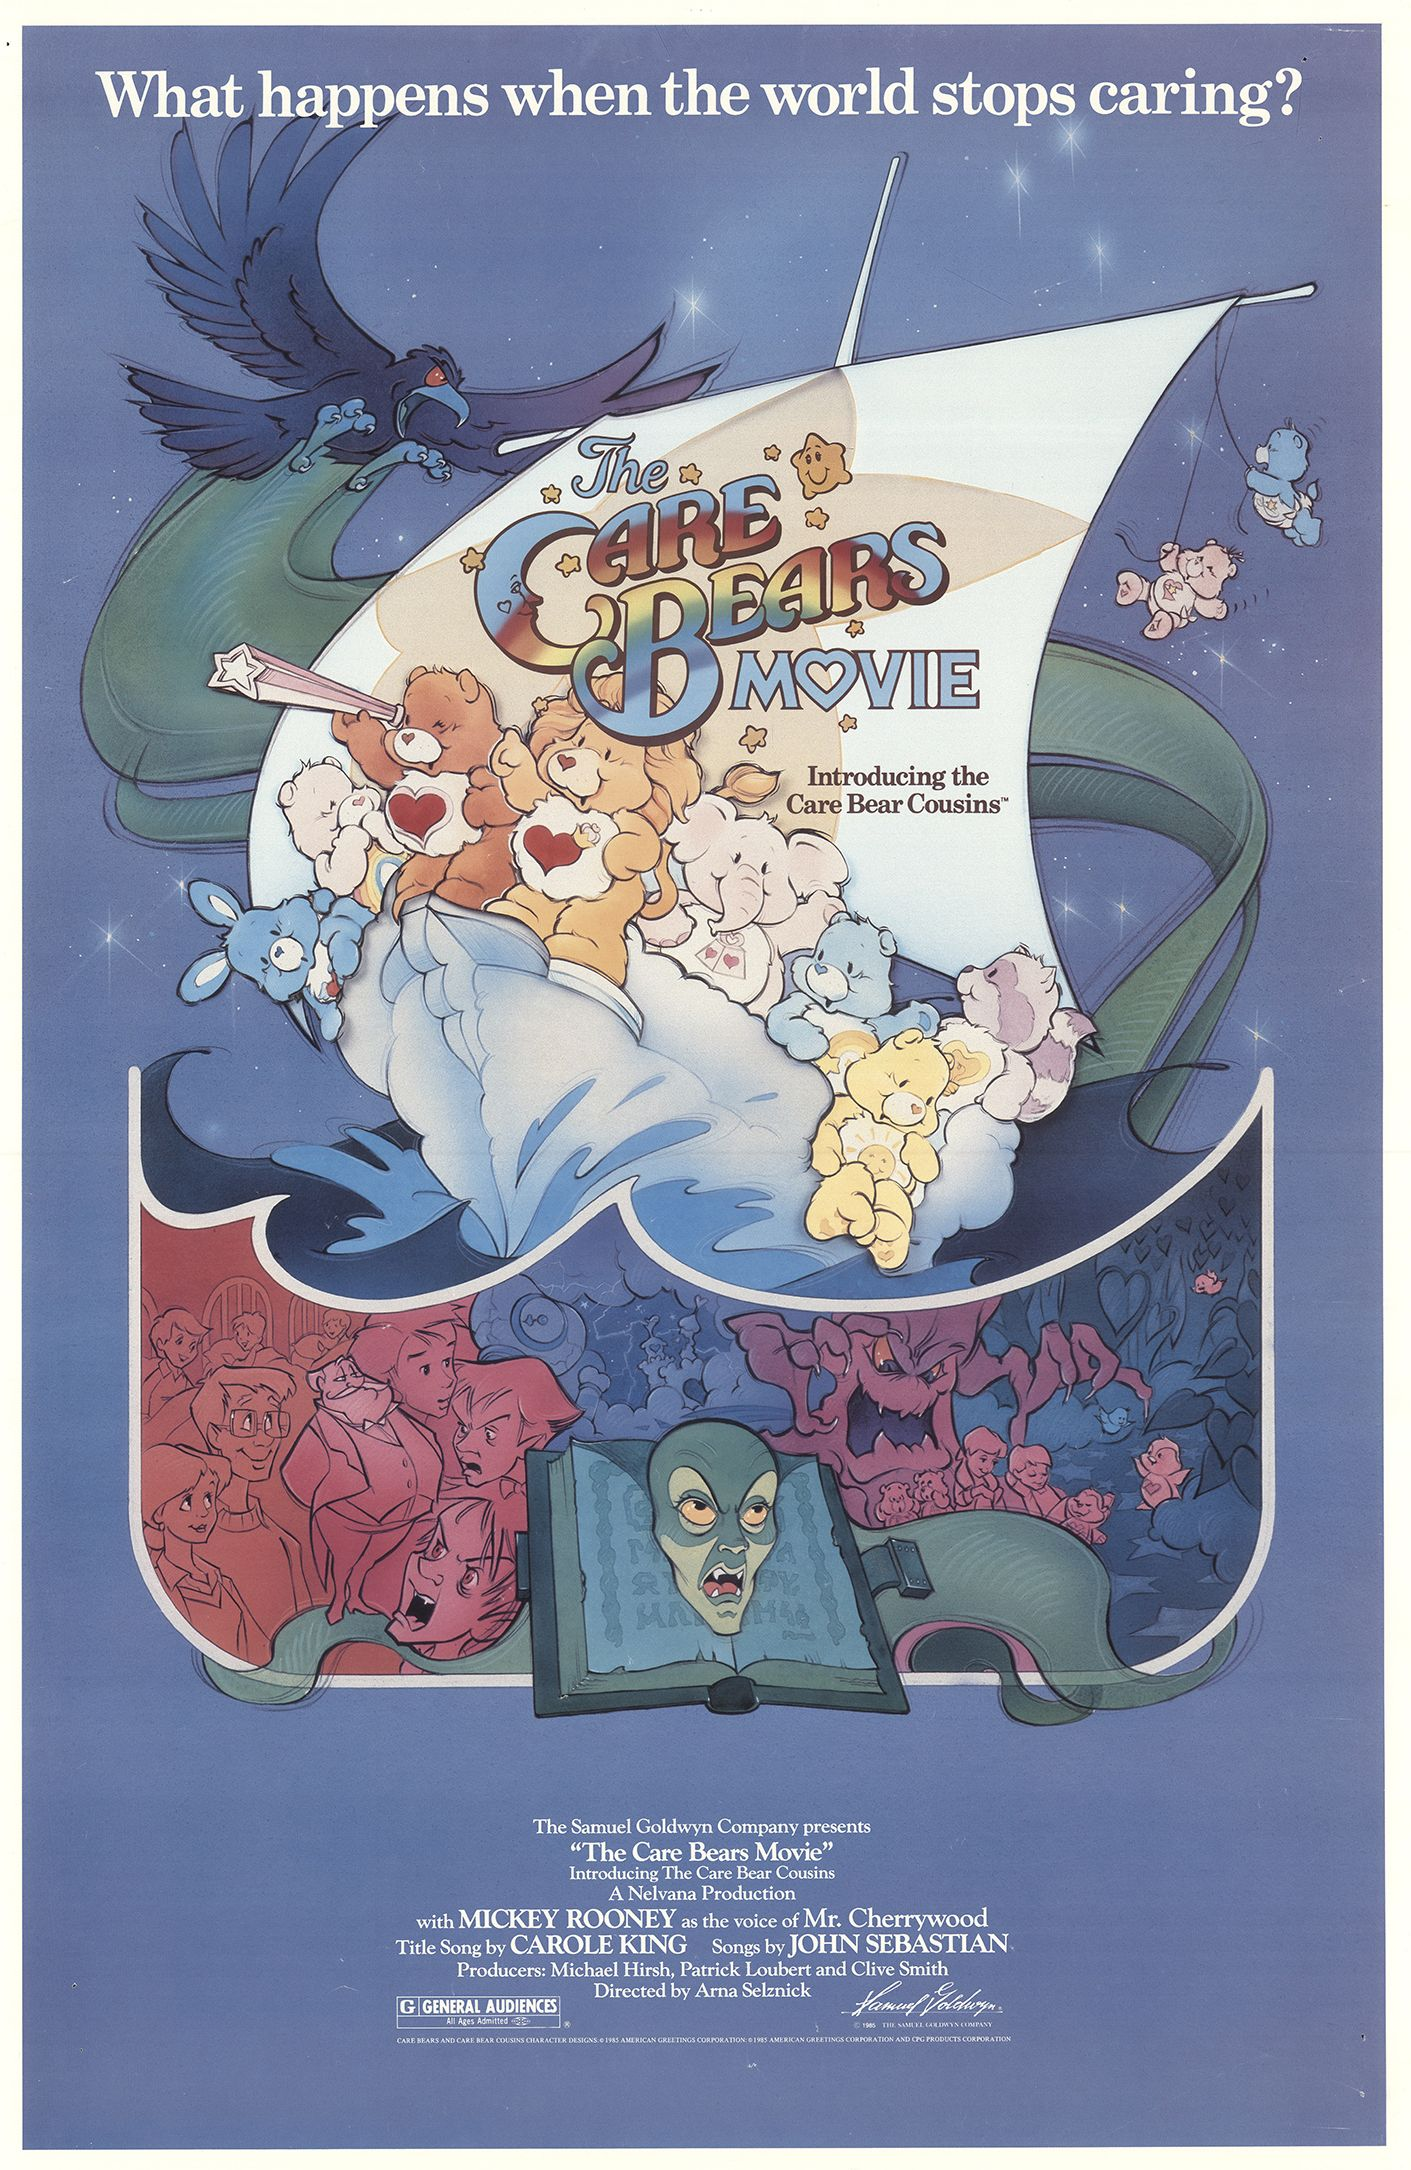 The Care Bears Movie 1985 Imdb